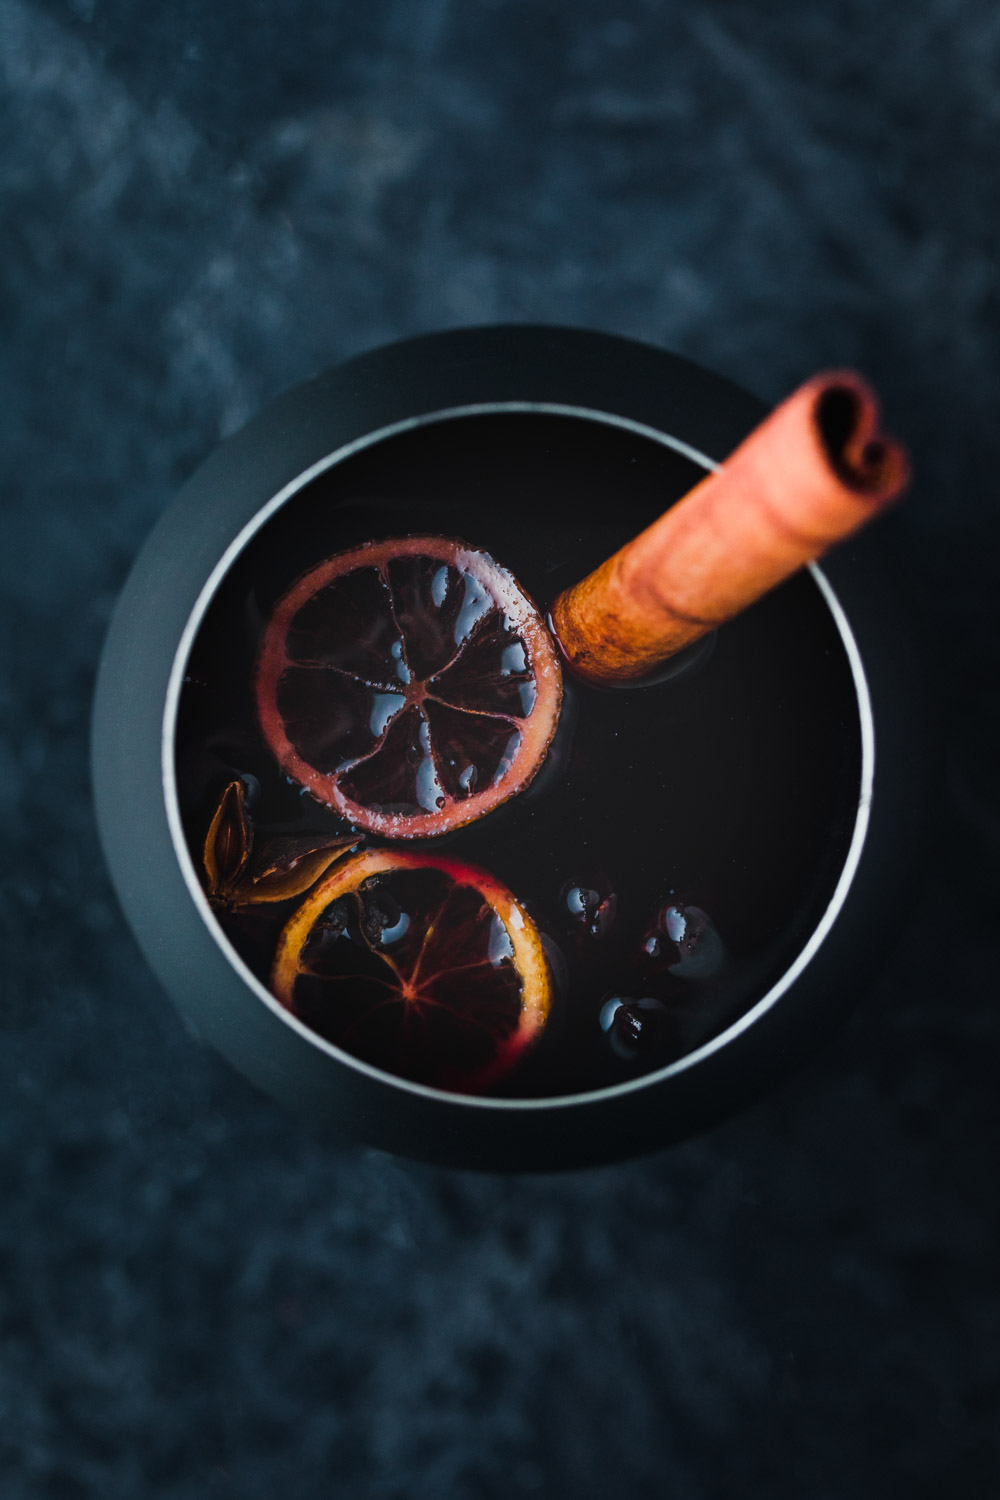 spiced wine poured into a black mug with a cinnamon stick, star anise, cloves, and sliced citrus.